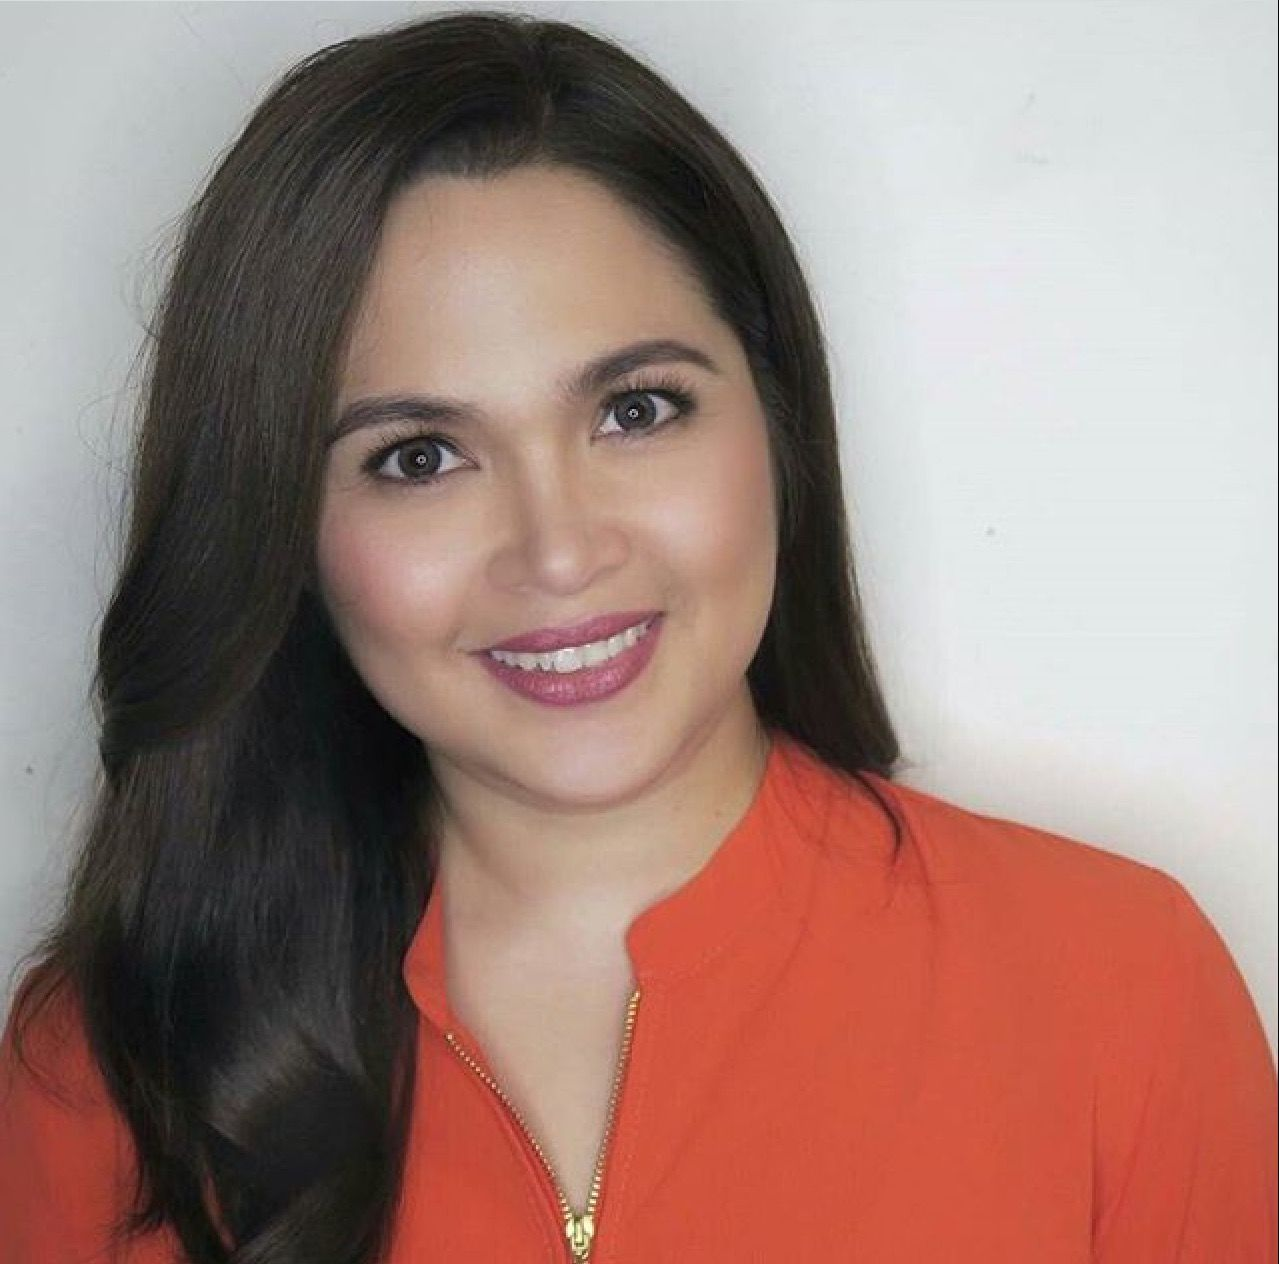 judy ann santos agoncillo (ctto) | filipino celebrities | pinterest